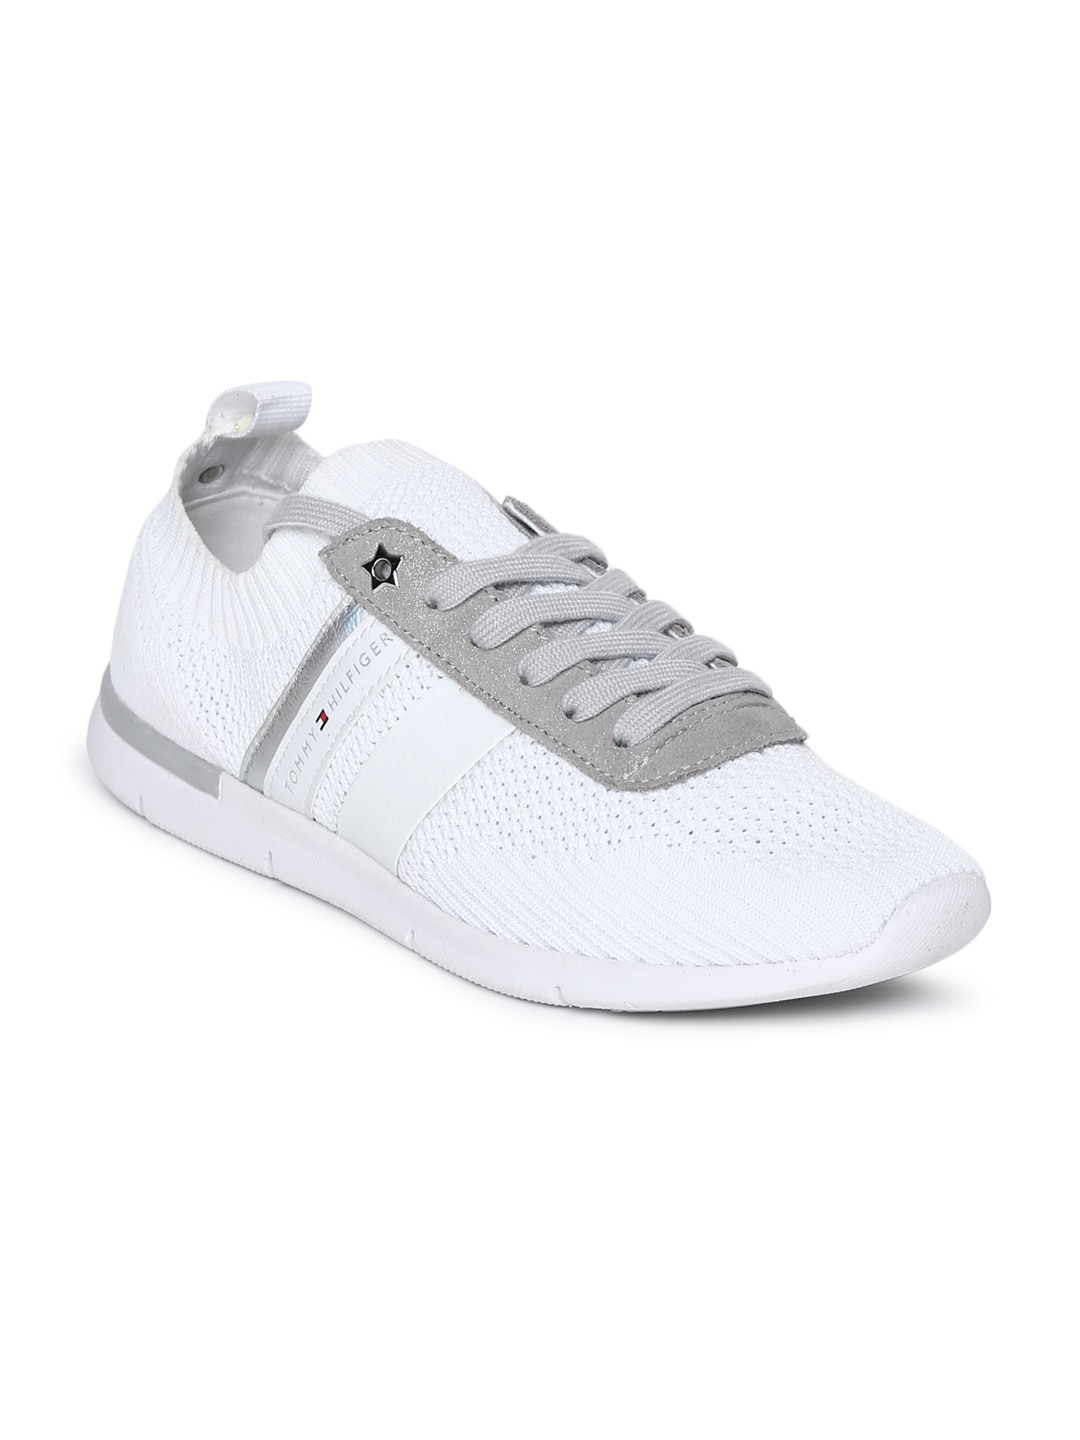 a01bc97f2f8b6 Shoes - Buy Shoes for Men